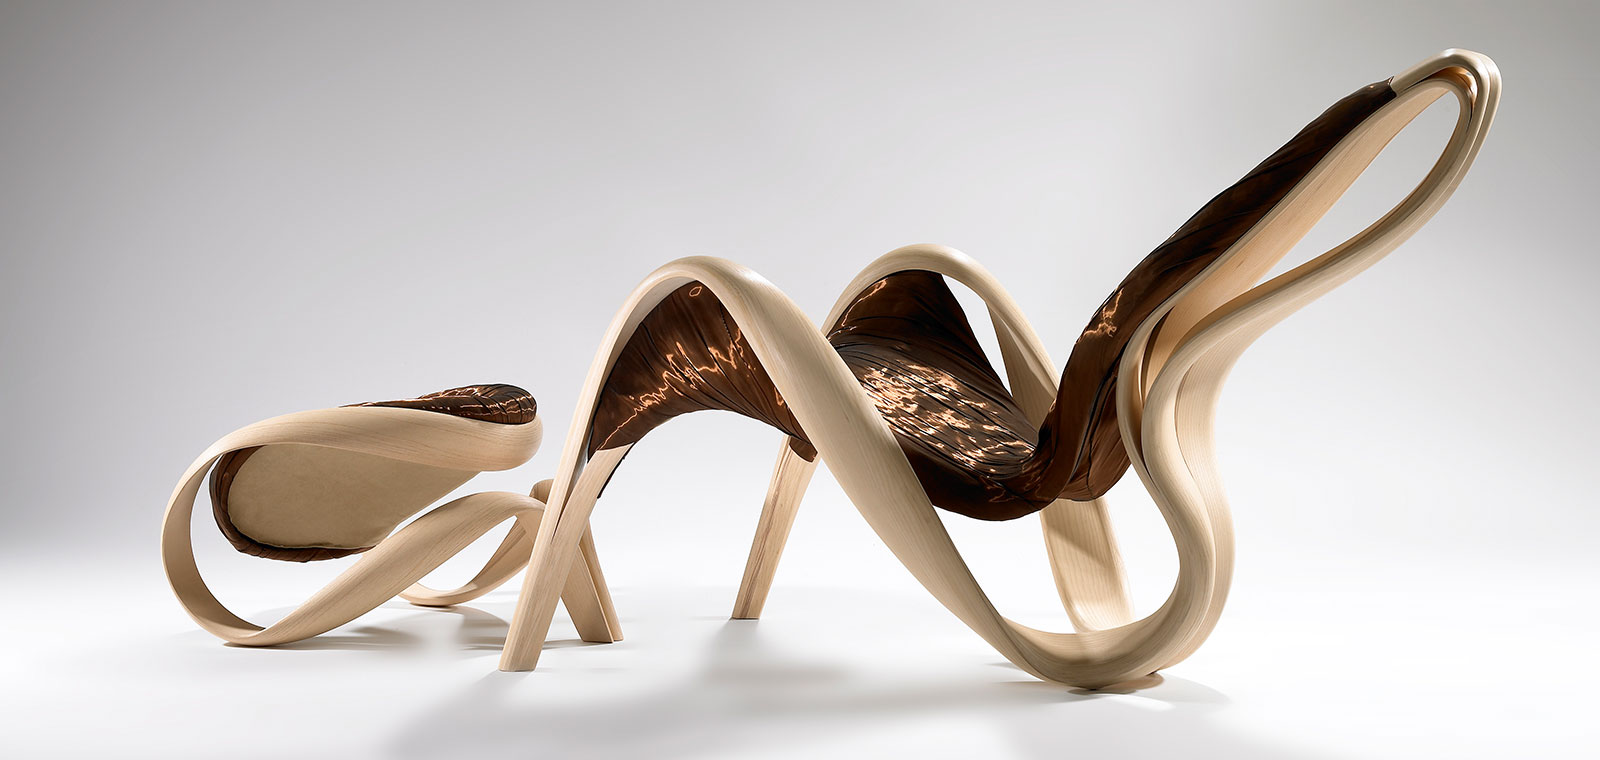 A look at the futuristic furniture design of joseph walsh for Wooden furniture design